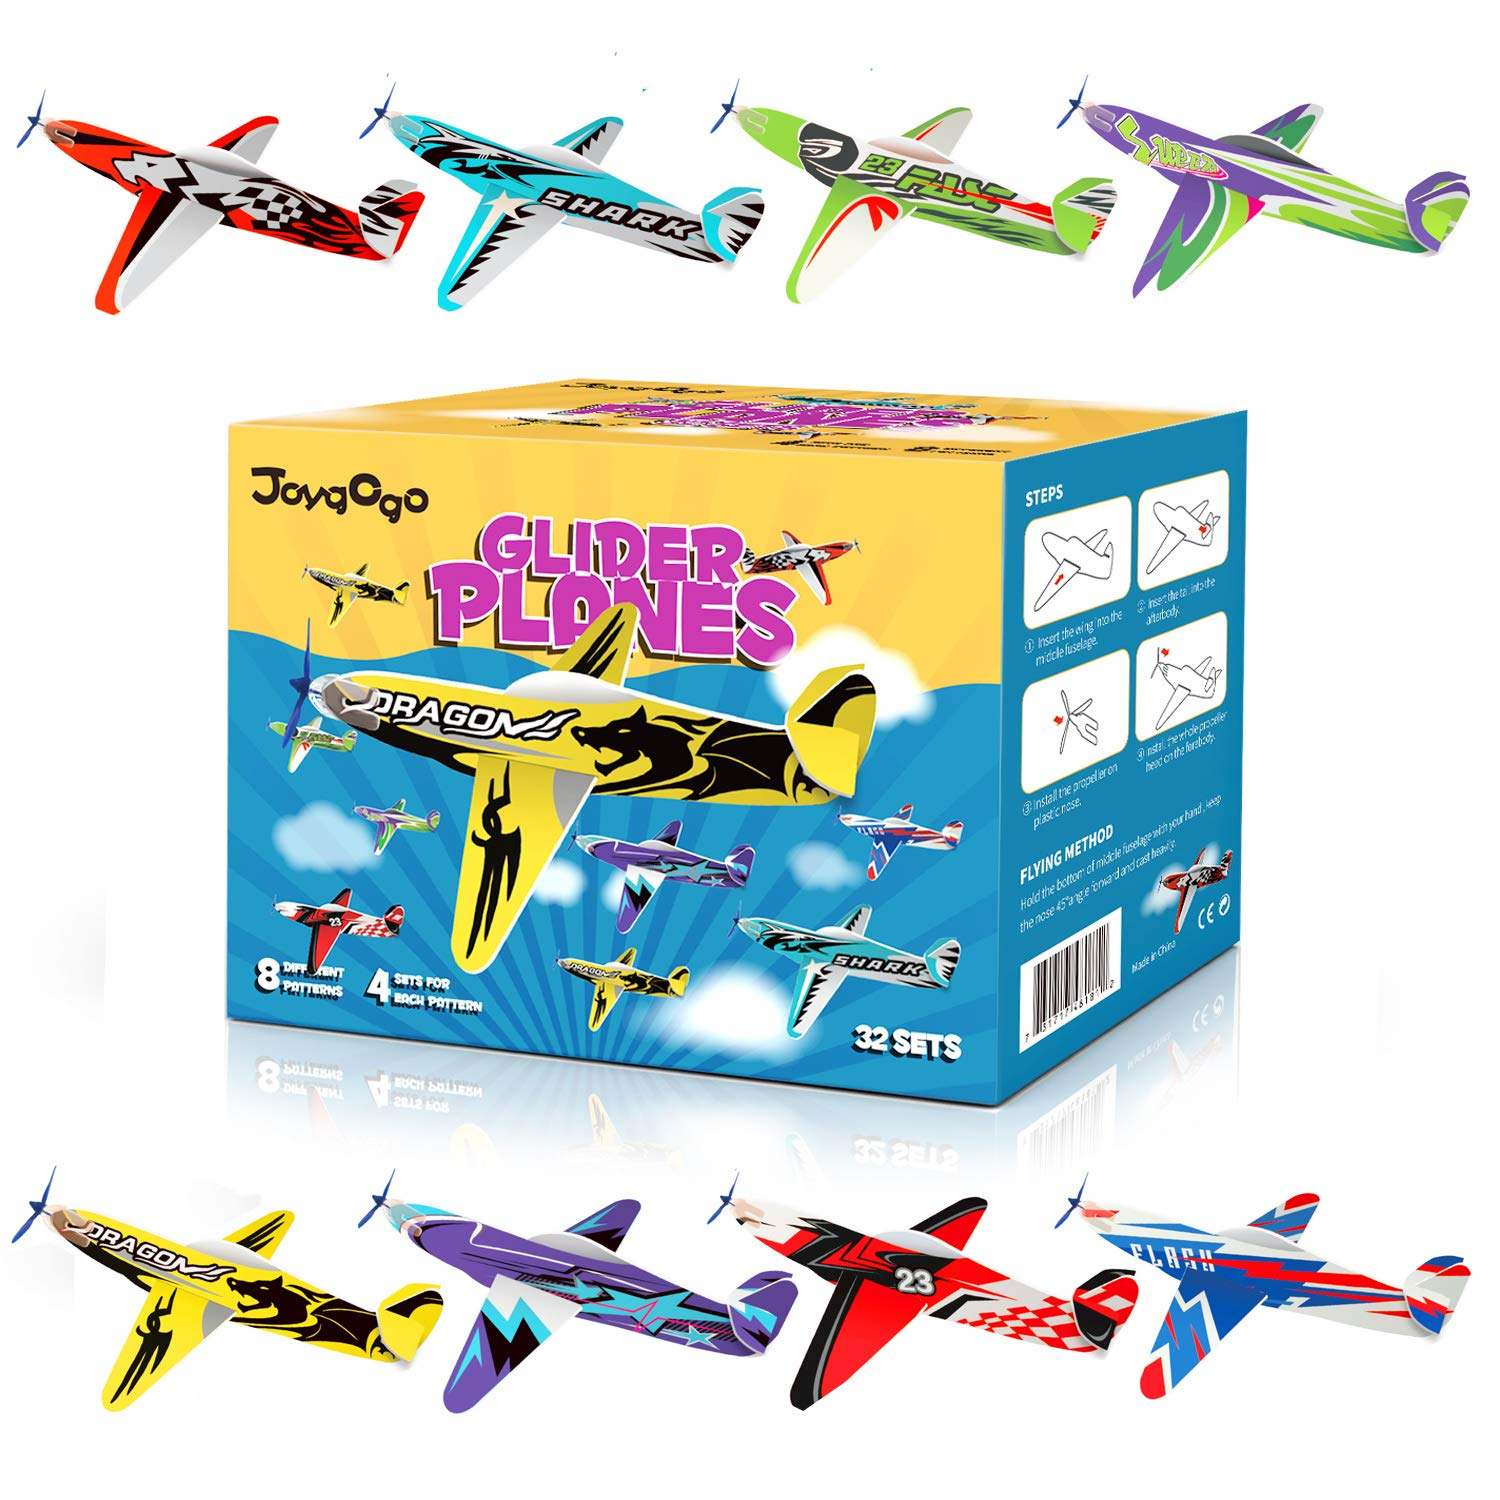 Joygogo 32 Pack Glider Planes,8'' Long Flying Glider Plane,8 Different Designs,Easy Assembly,Durable Quality-Kids Party Favors for Valentines Airplanes,Birthday Party, Carnival Prizes by Joygogo